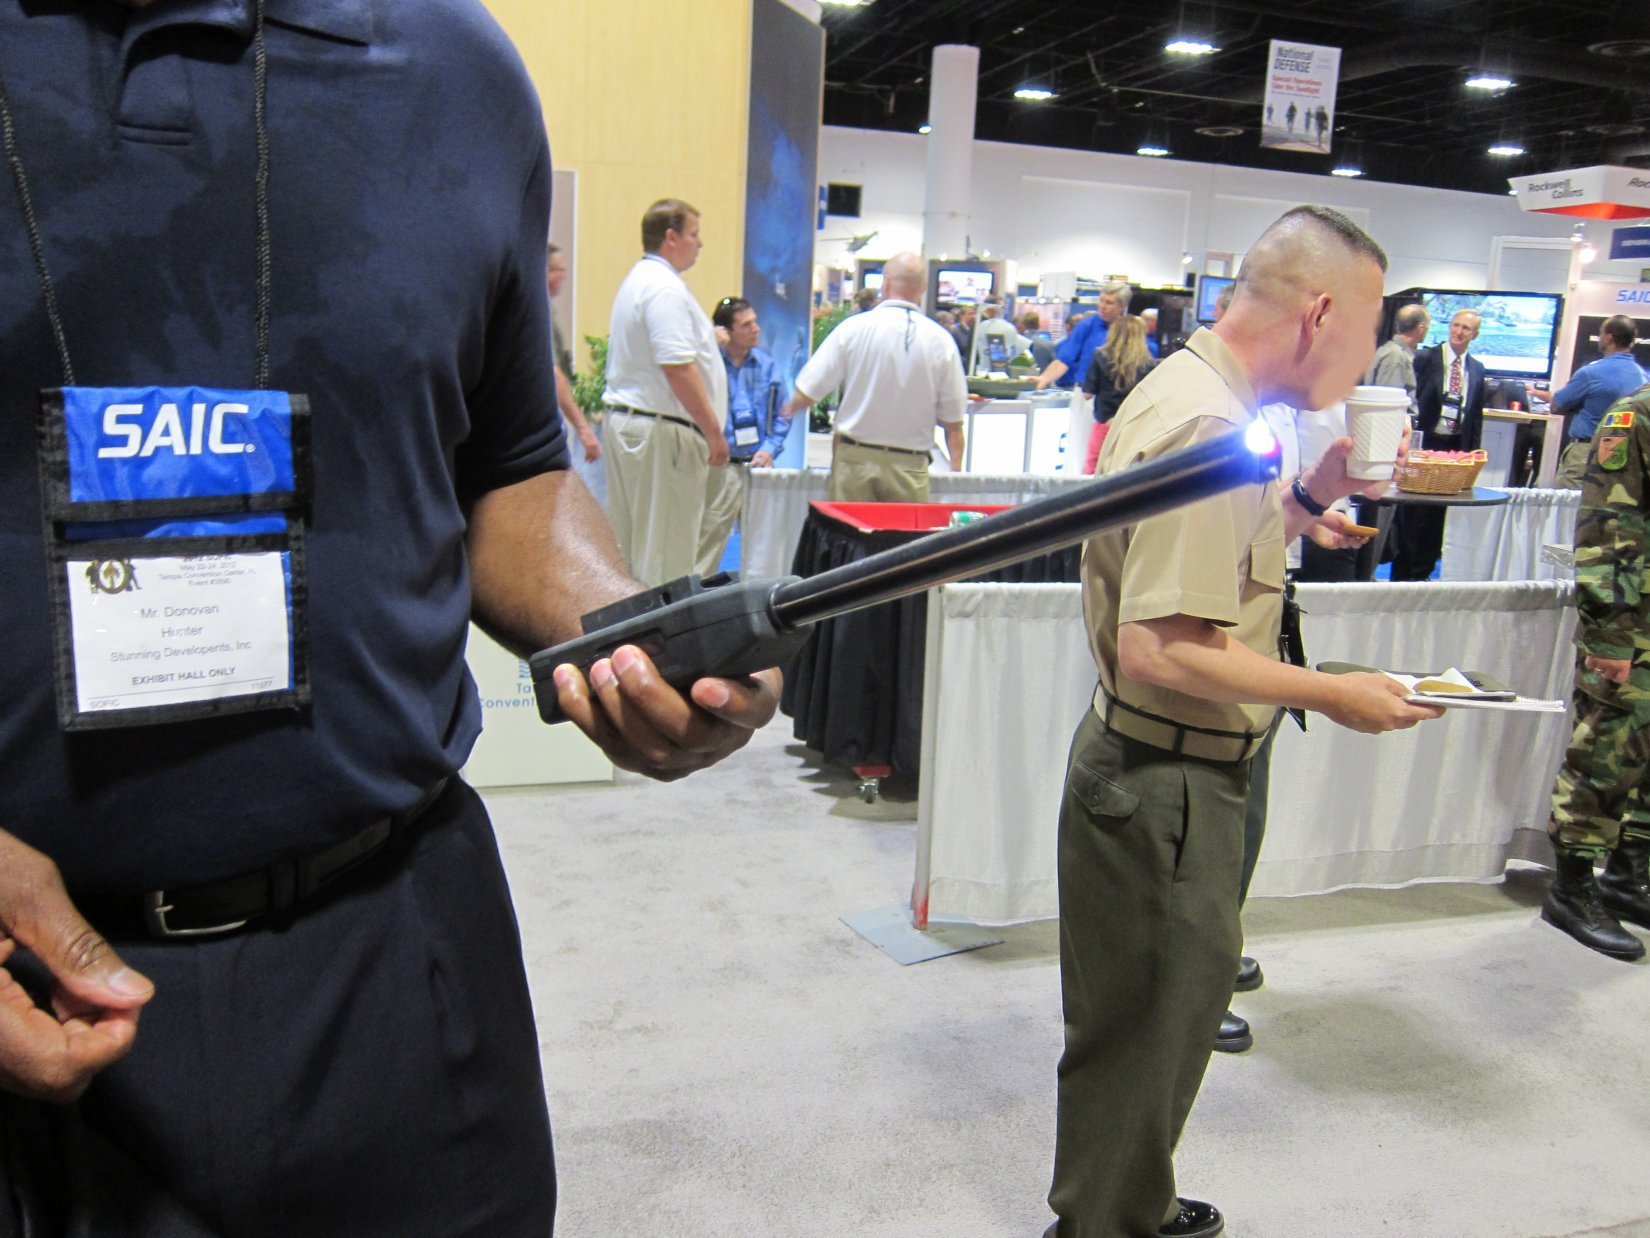 Stunning Developments BattleProd Combat Tactical Stun Baton Donovan Hunter NDIA SOFIC 2012 DefenseReview.com DR 4 Stunning Developments BattleProd Combat/Tactical Stun Baton: 3 5 Million Volt Tactical Cattle Prod for Instant Compliance in Urban Warfare Operations (Video!)